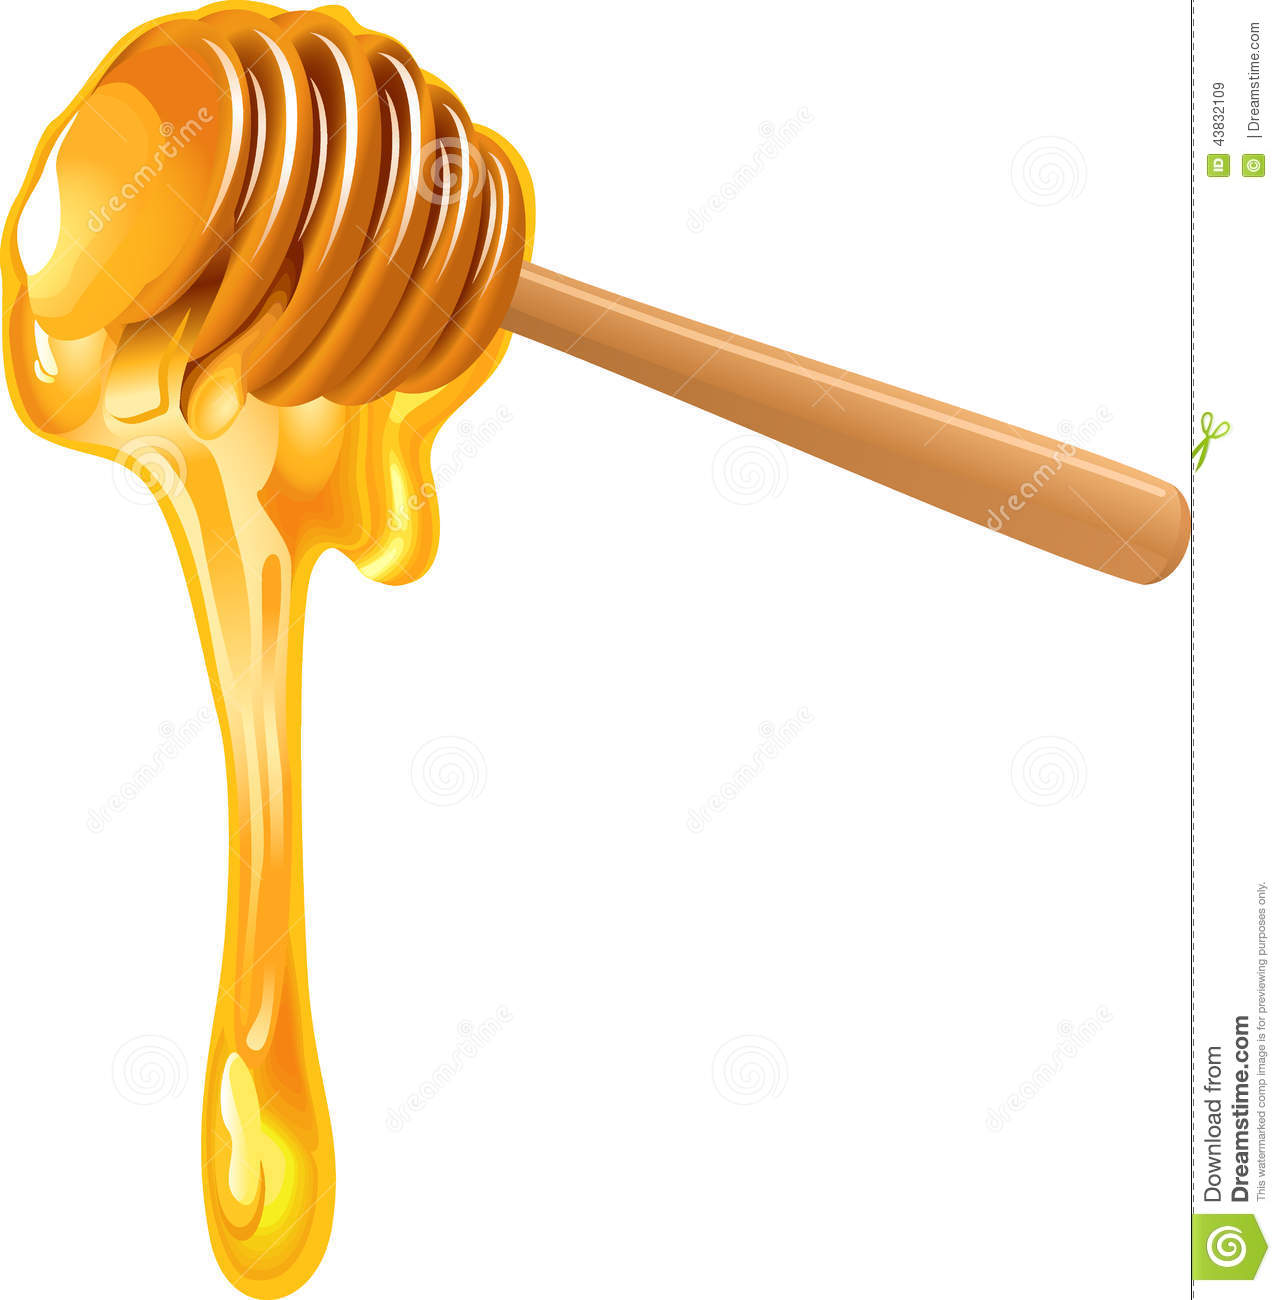 Illustration of honey dipper isolated on white background.